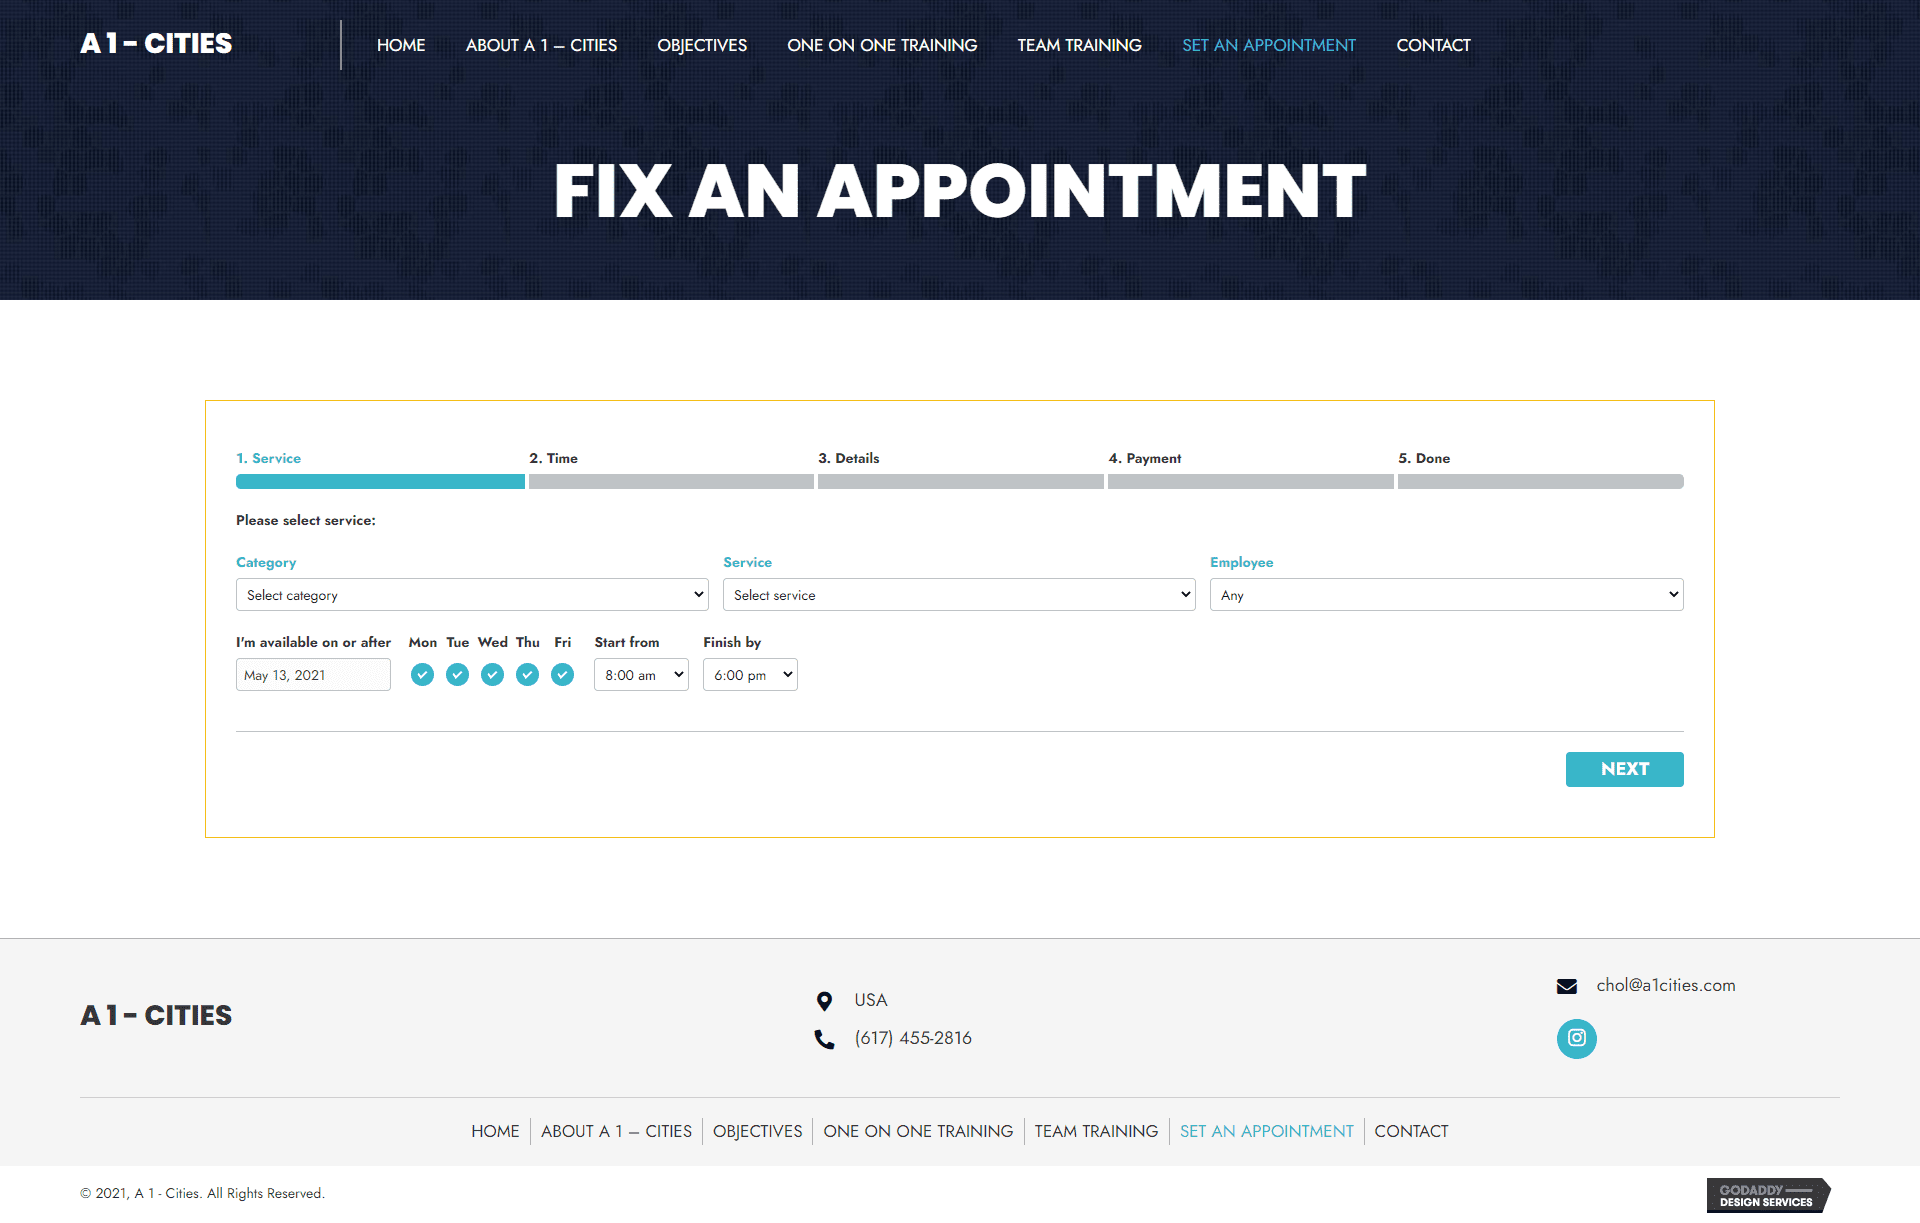 A 1 - Cities Appointment